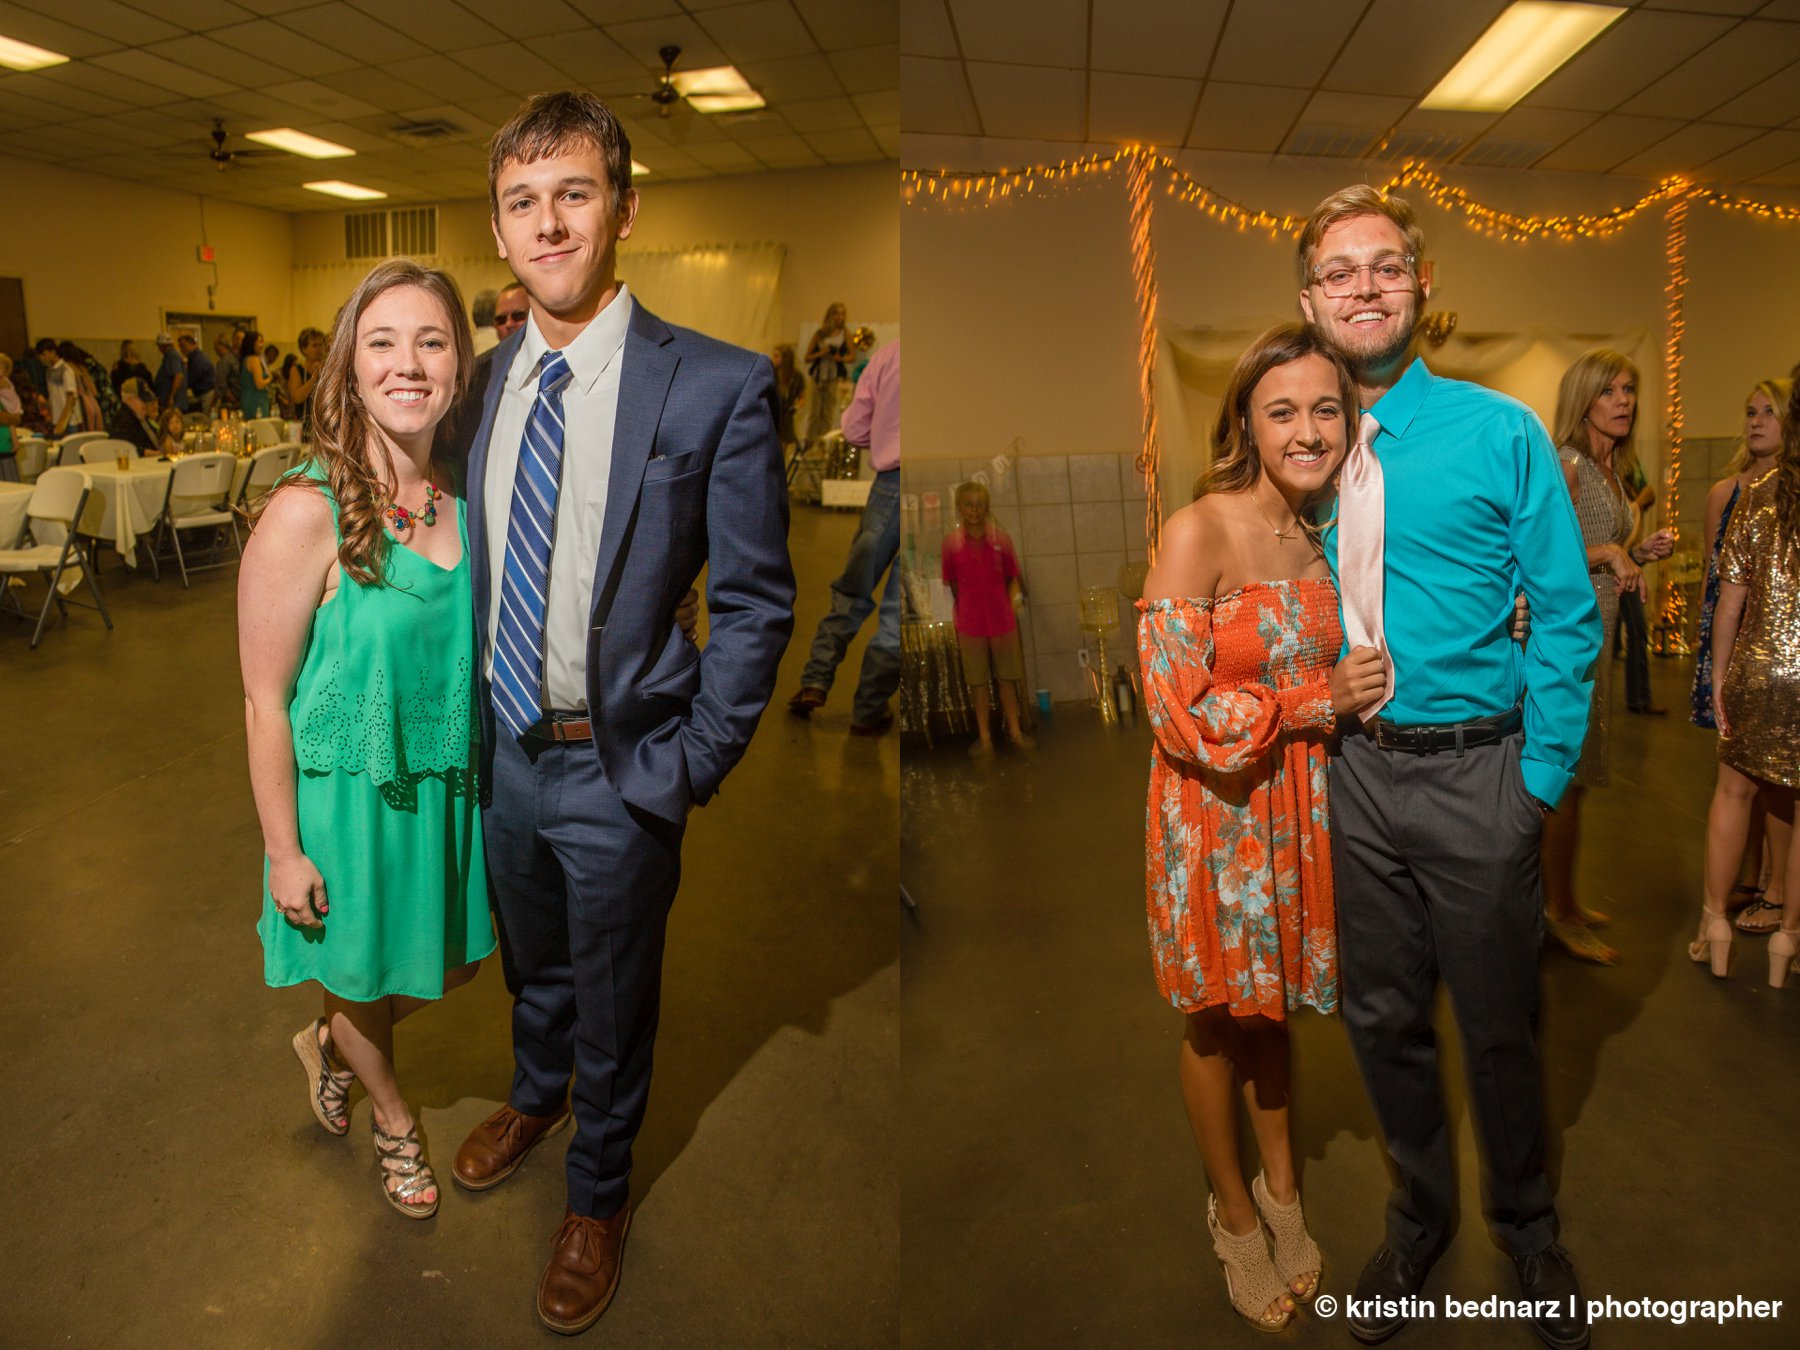 It's always important to photograph the guests at a wedding.  Not just the key players, like family and wedding party.  The guy above on the left?  That's Alex and he worked for us when we were Take One Video.  Great guy and looks like a nice one as well. Hello pretty girlfriend!